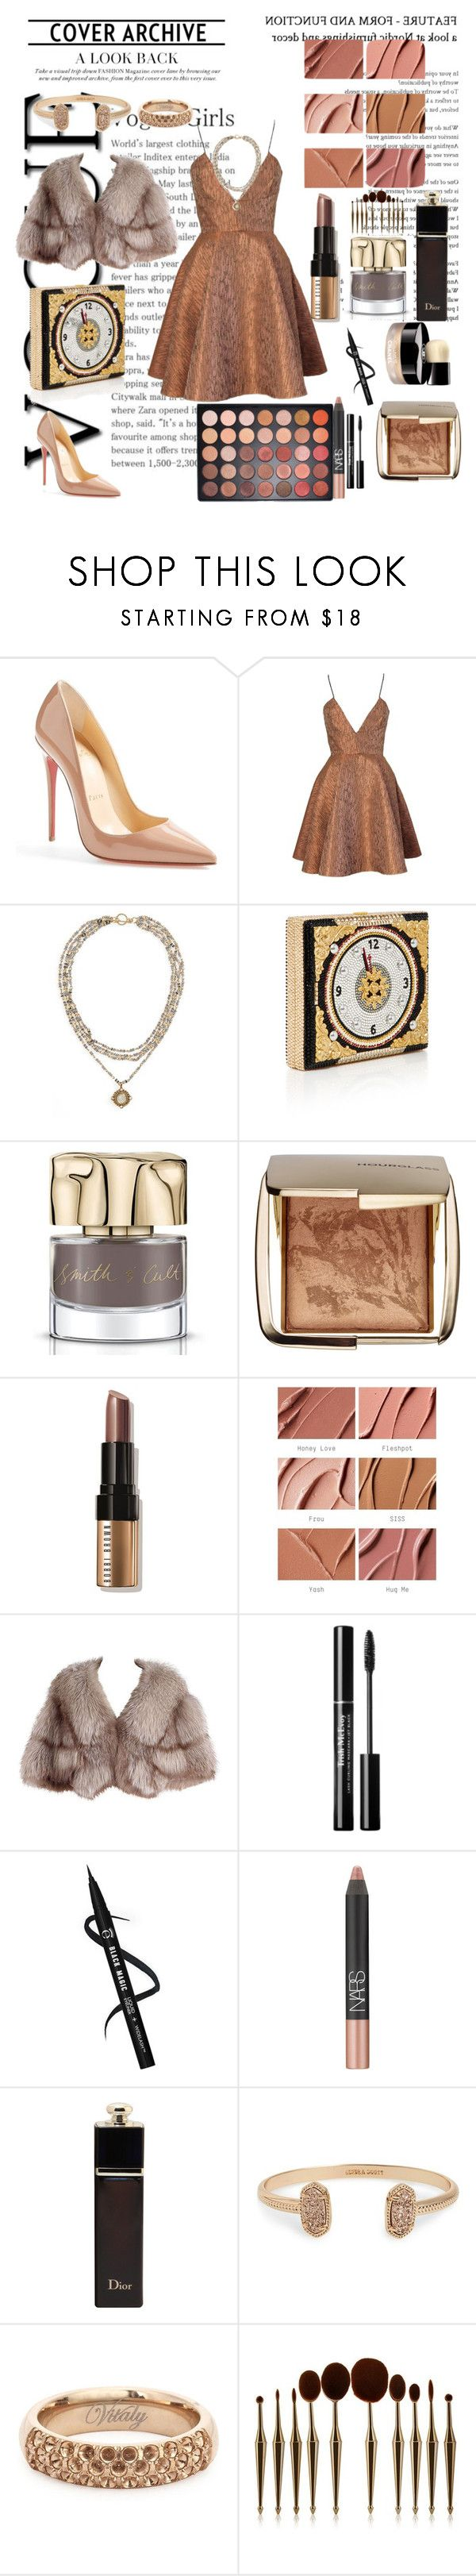 """""""."""" by nour20-17 ❤ liked on Polyvore featuring Christian Louboutin, Joana Almagro, Virgins Saints & Angels, Smith & Cult, Hourglass Cosmetics, Bobbi Brown Cosmetics, Chanel, MAC Cosmetics, NARS Cosmetics and Christian Dior"""